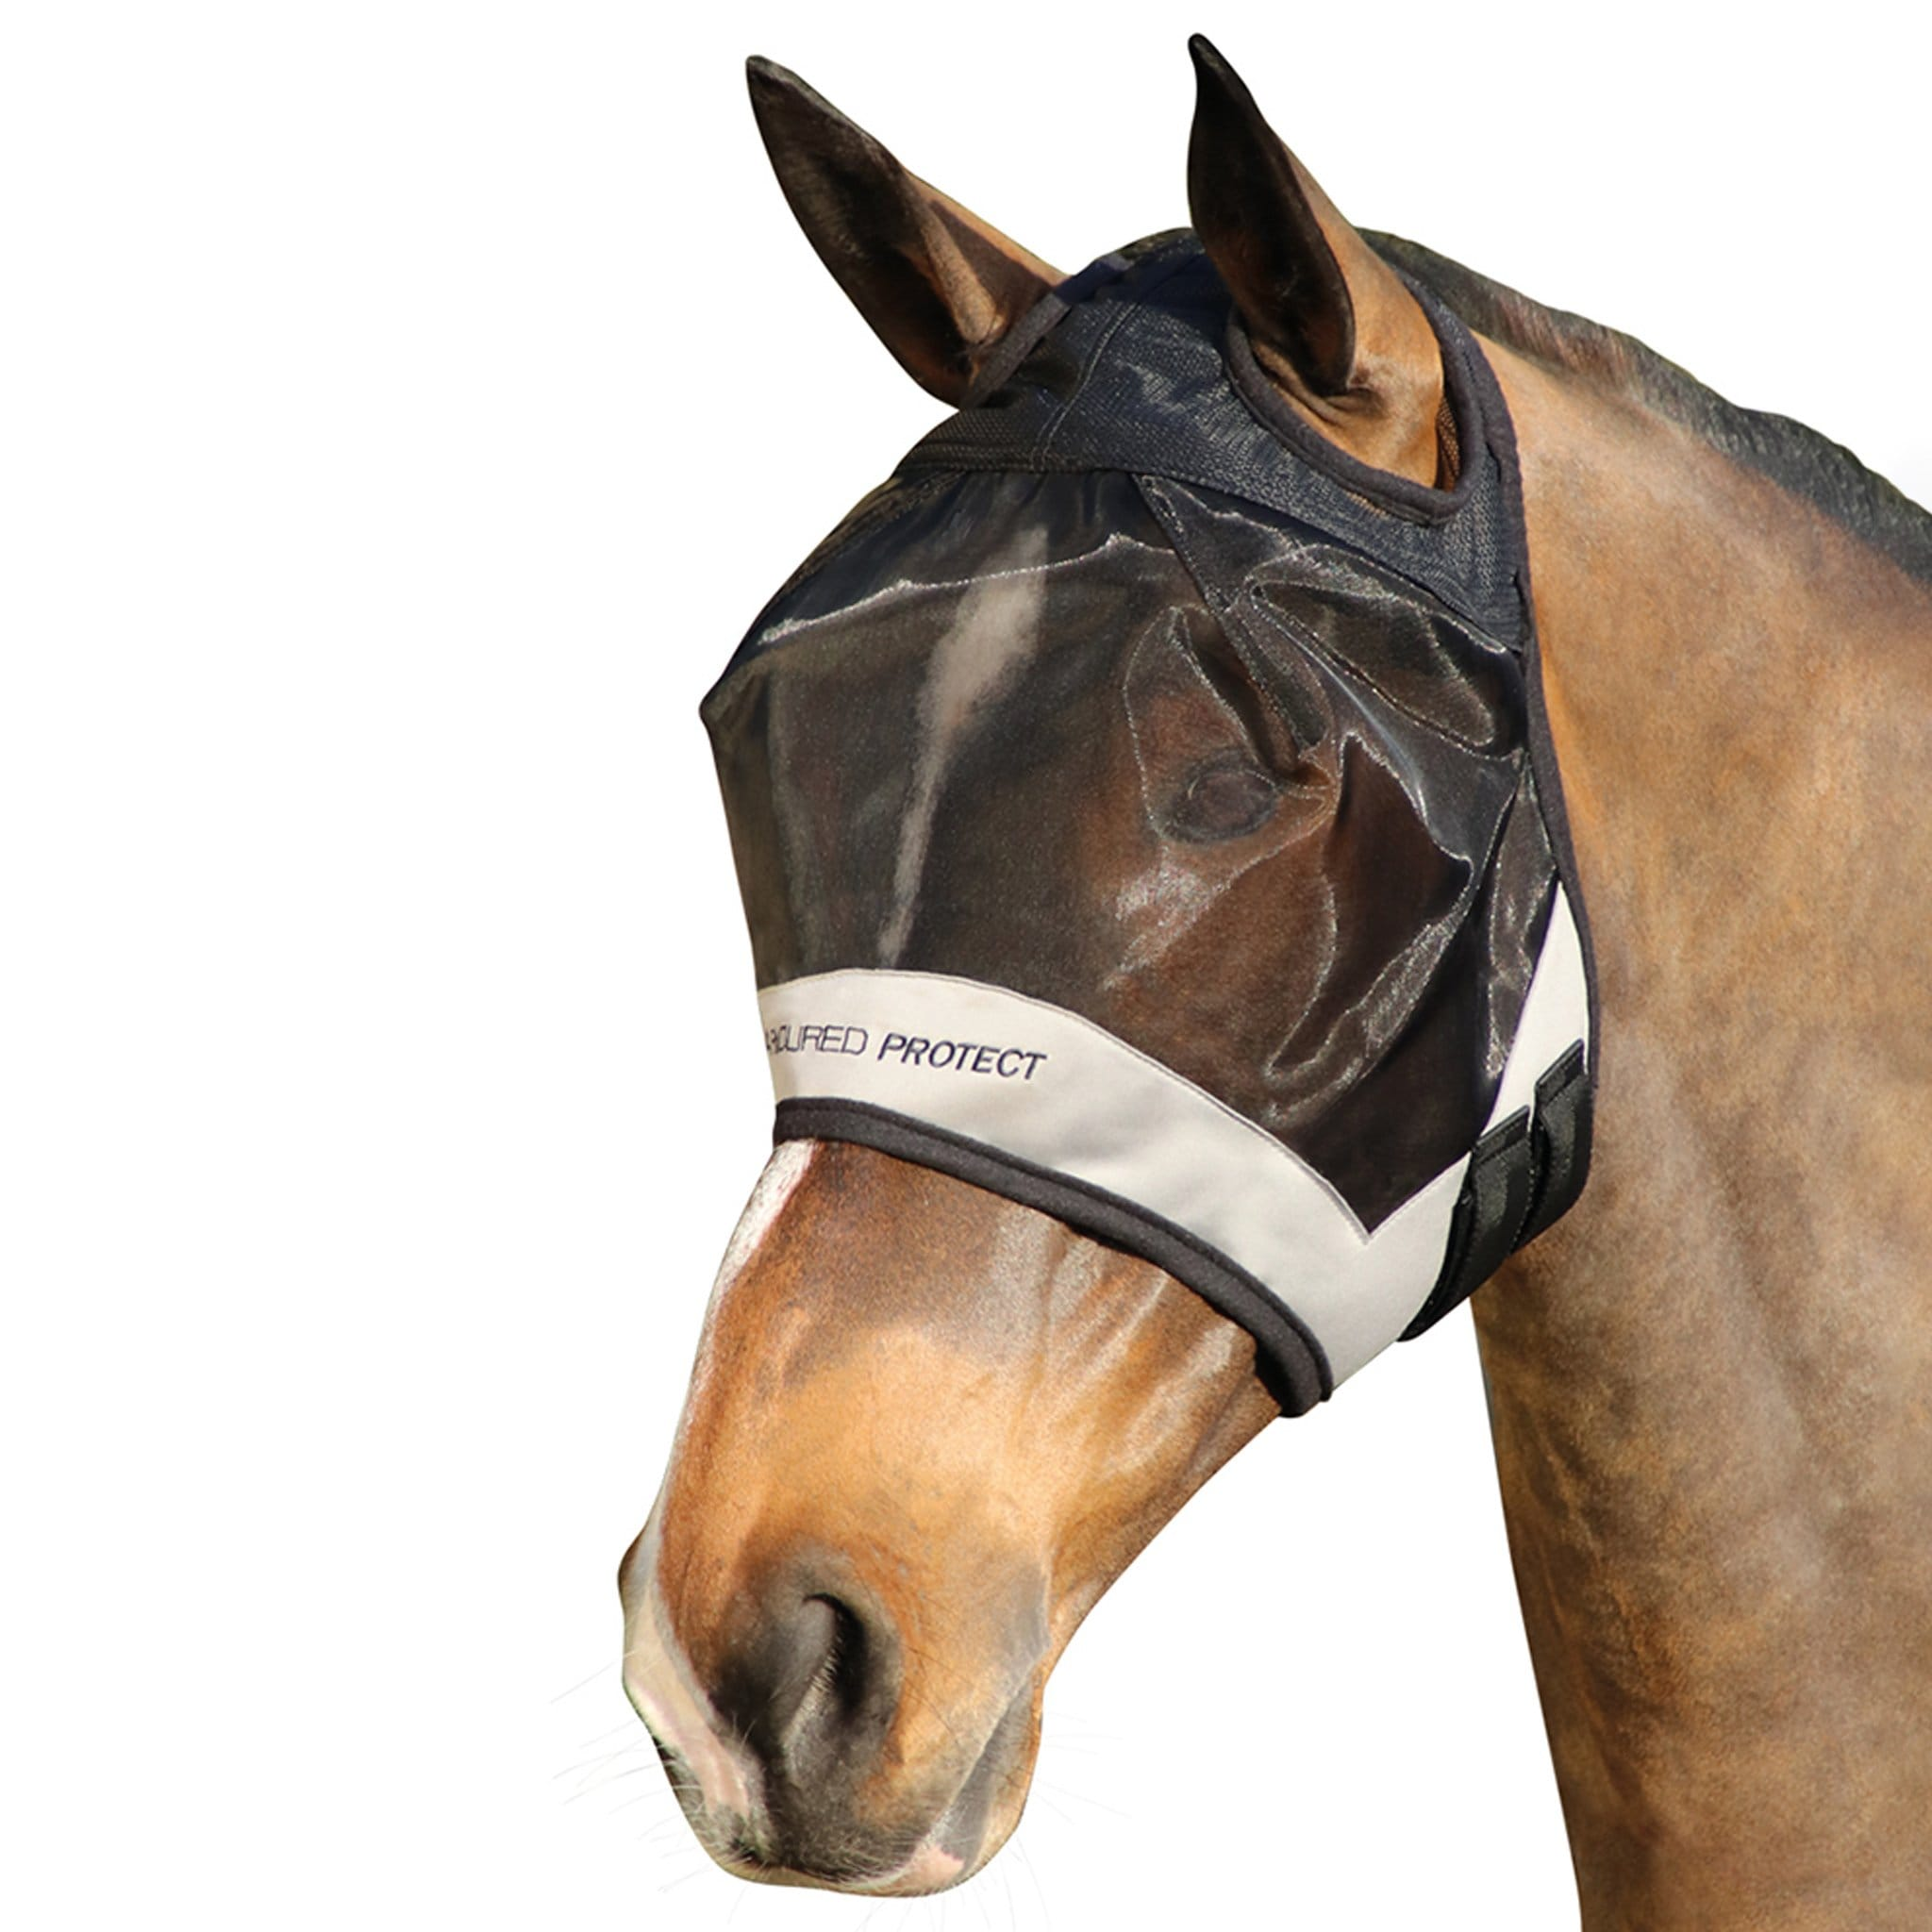 Hy Armoured Protect Half Fly Mask Without Ears or Nose Black and Grey 26994